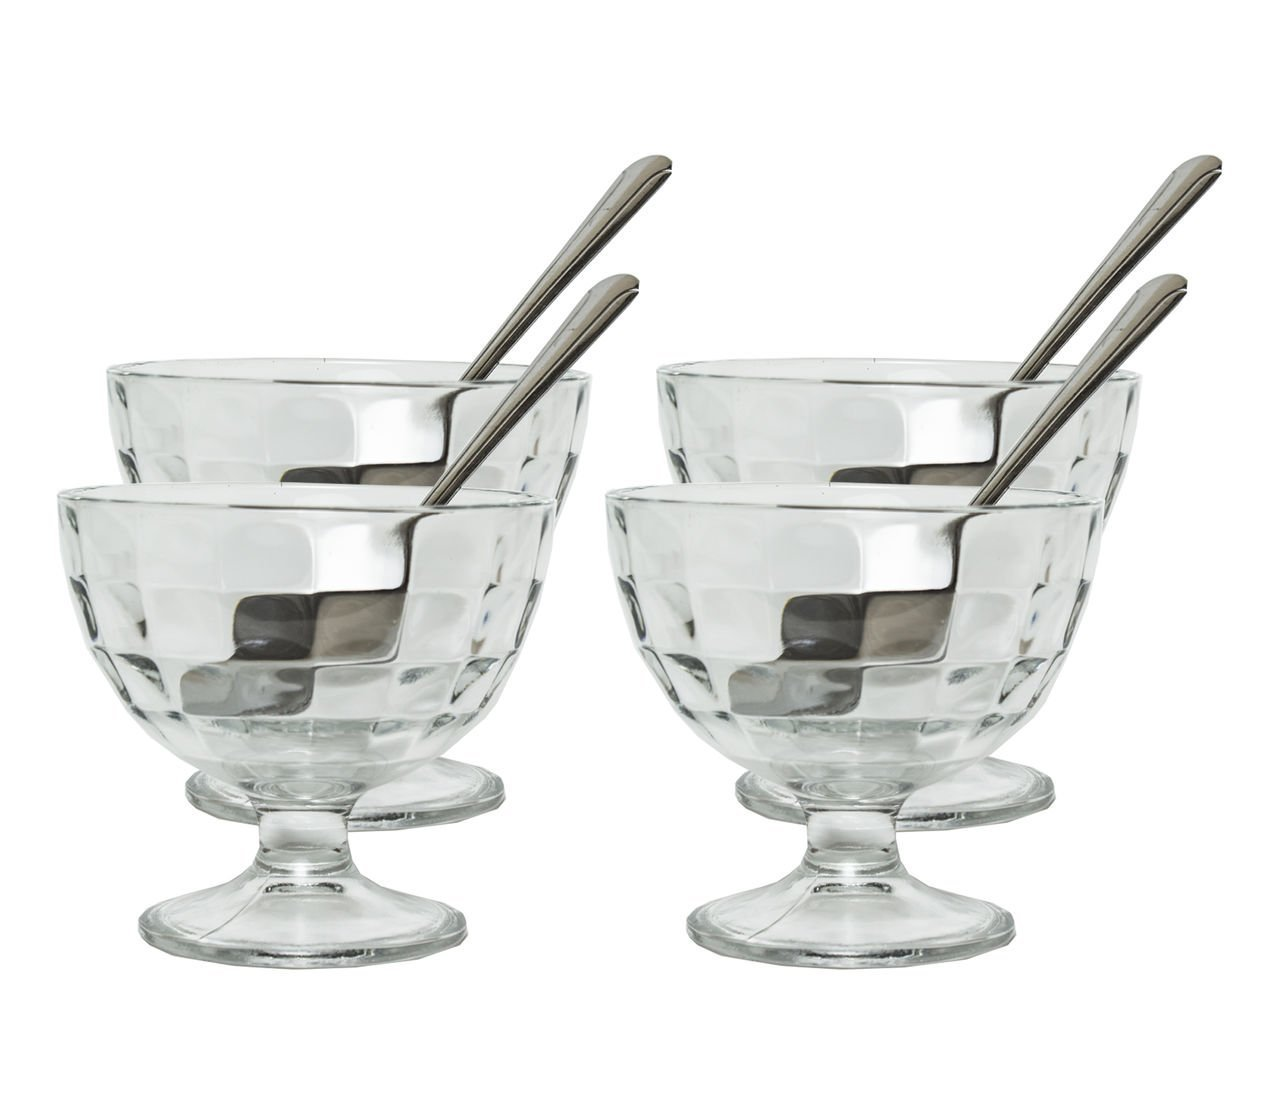 Generic Clear Glass Footed Dessert Bowls with 4 Stainless Steel Spoons